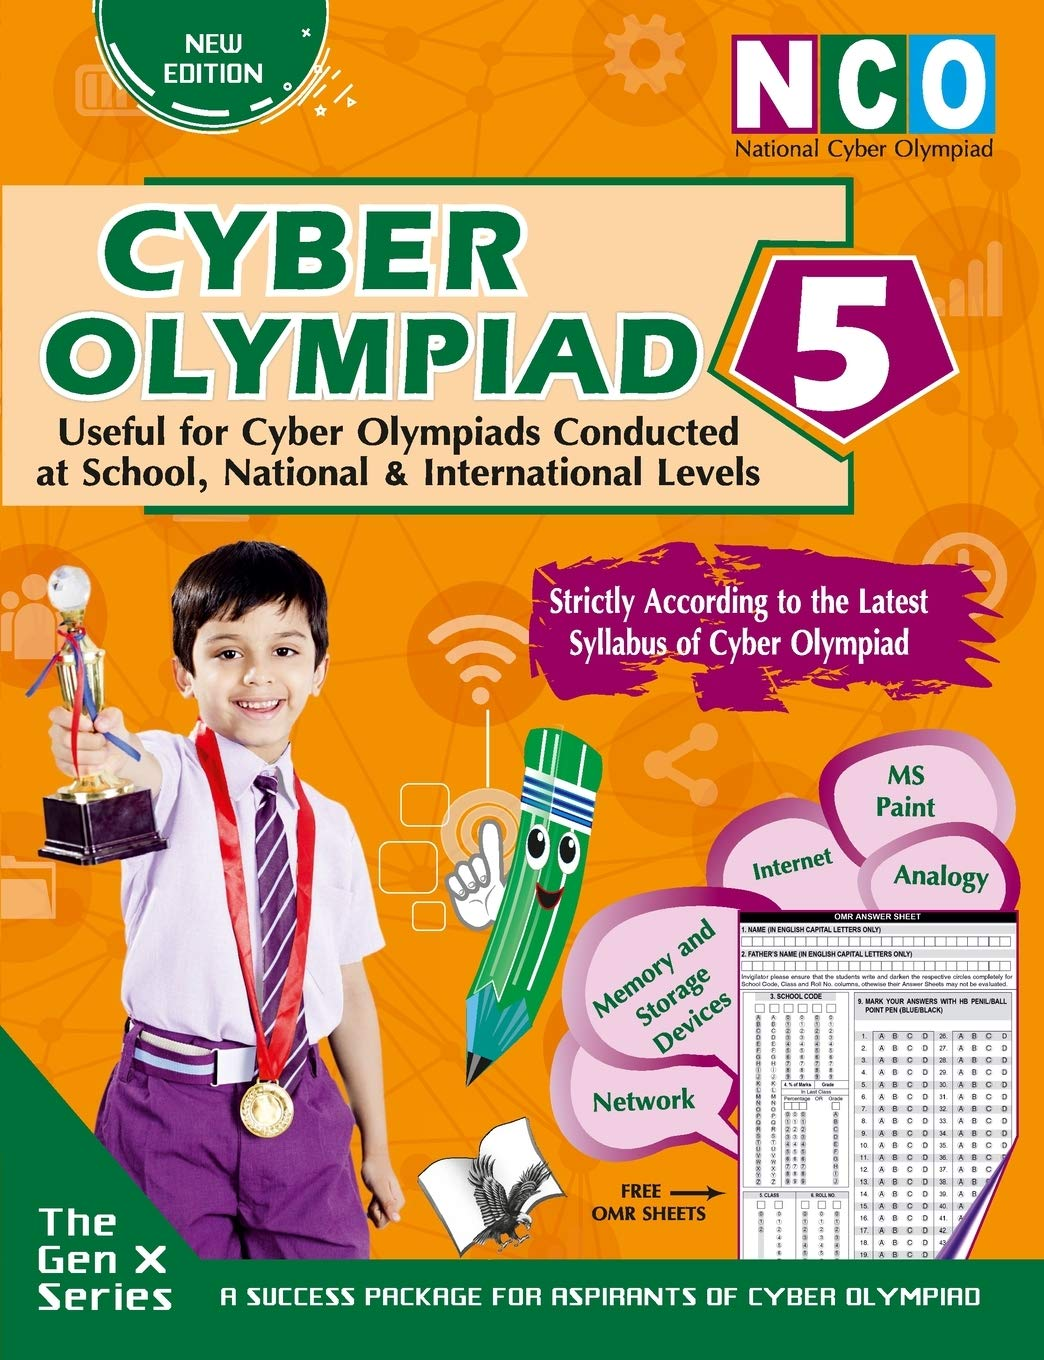 CYBER OLYMPIAD 5 (USEFUL FOR CYBER OLYMPIADS CONDUCTED AT SCHOOL, NATIONAL & INTERNATIONAL LEVELS)